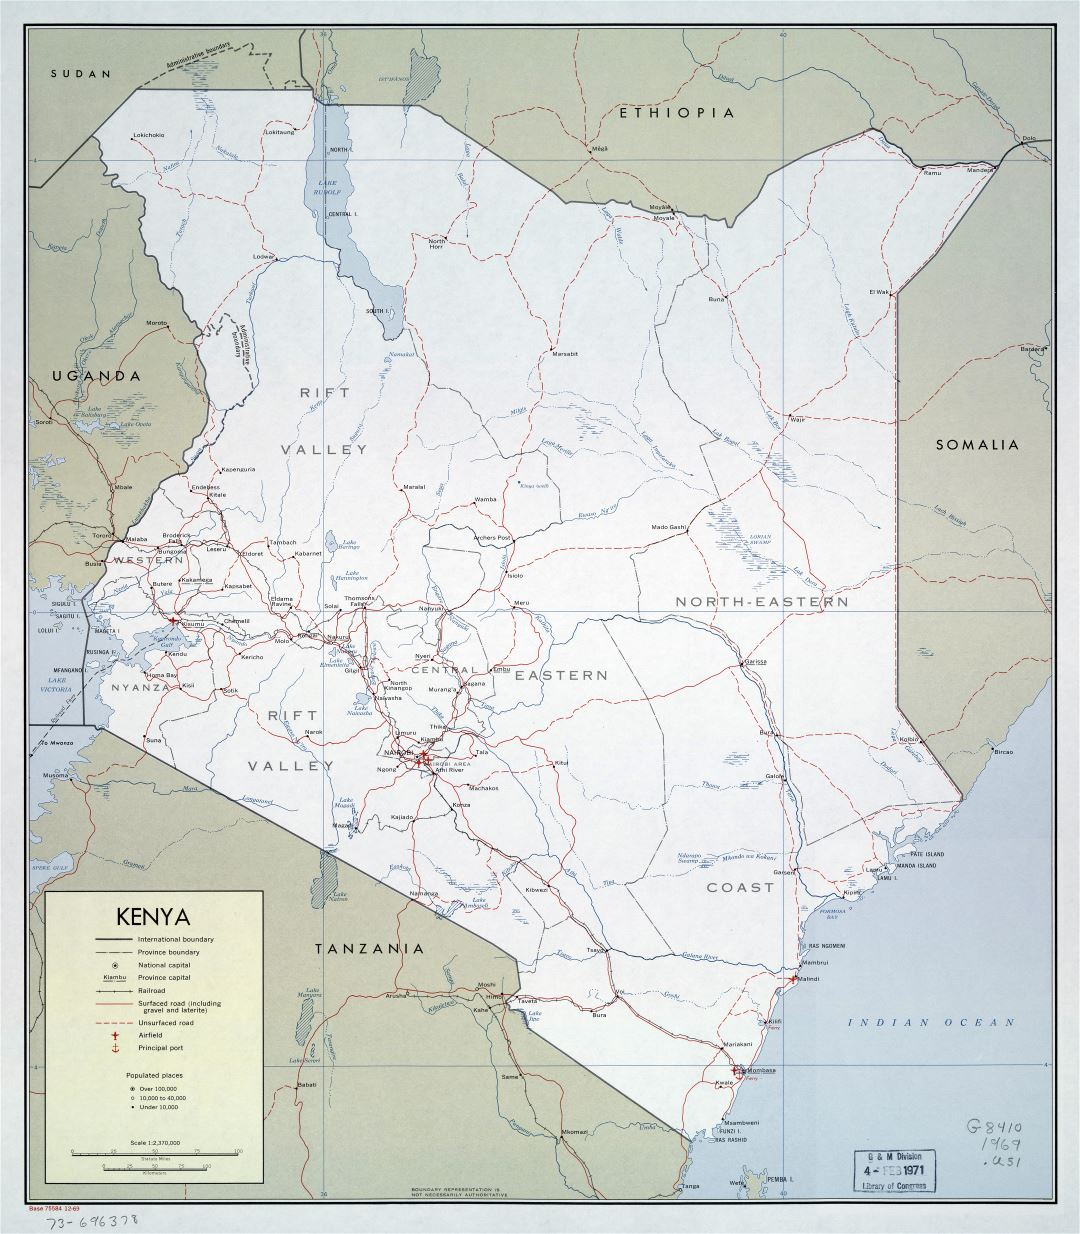 Large scale political and administrative map of Kenya with roads, railroads, cities, ports and airports - 1969